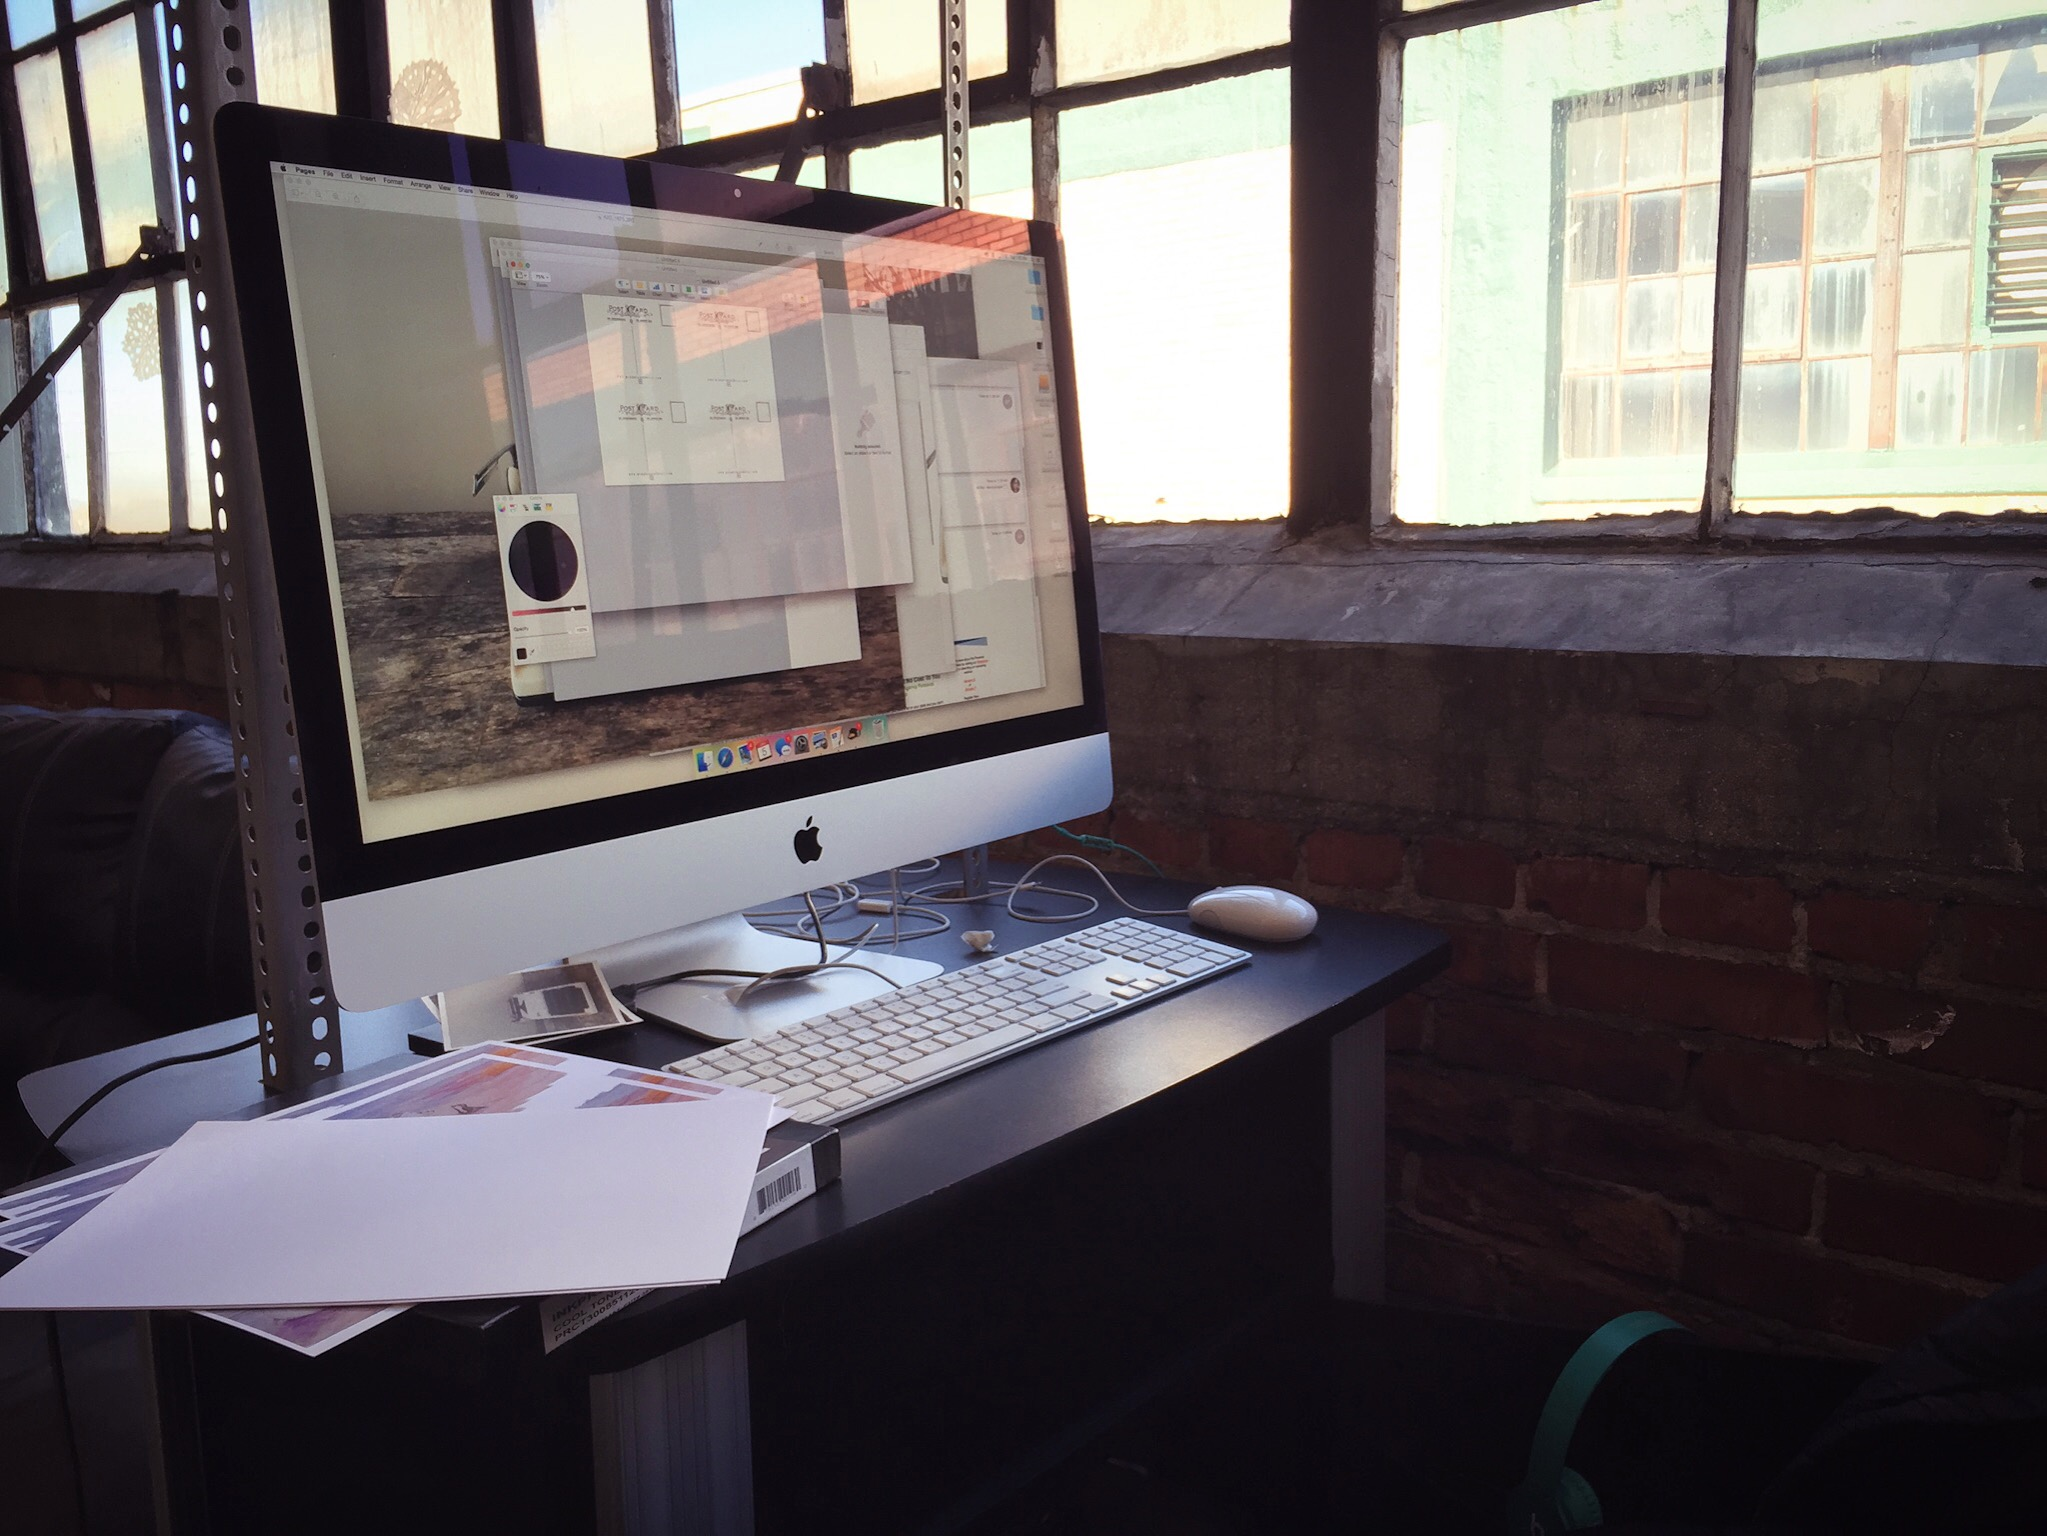 #WeAreMultiply Project, Day 3; my view